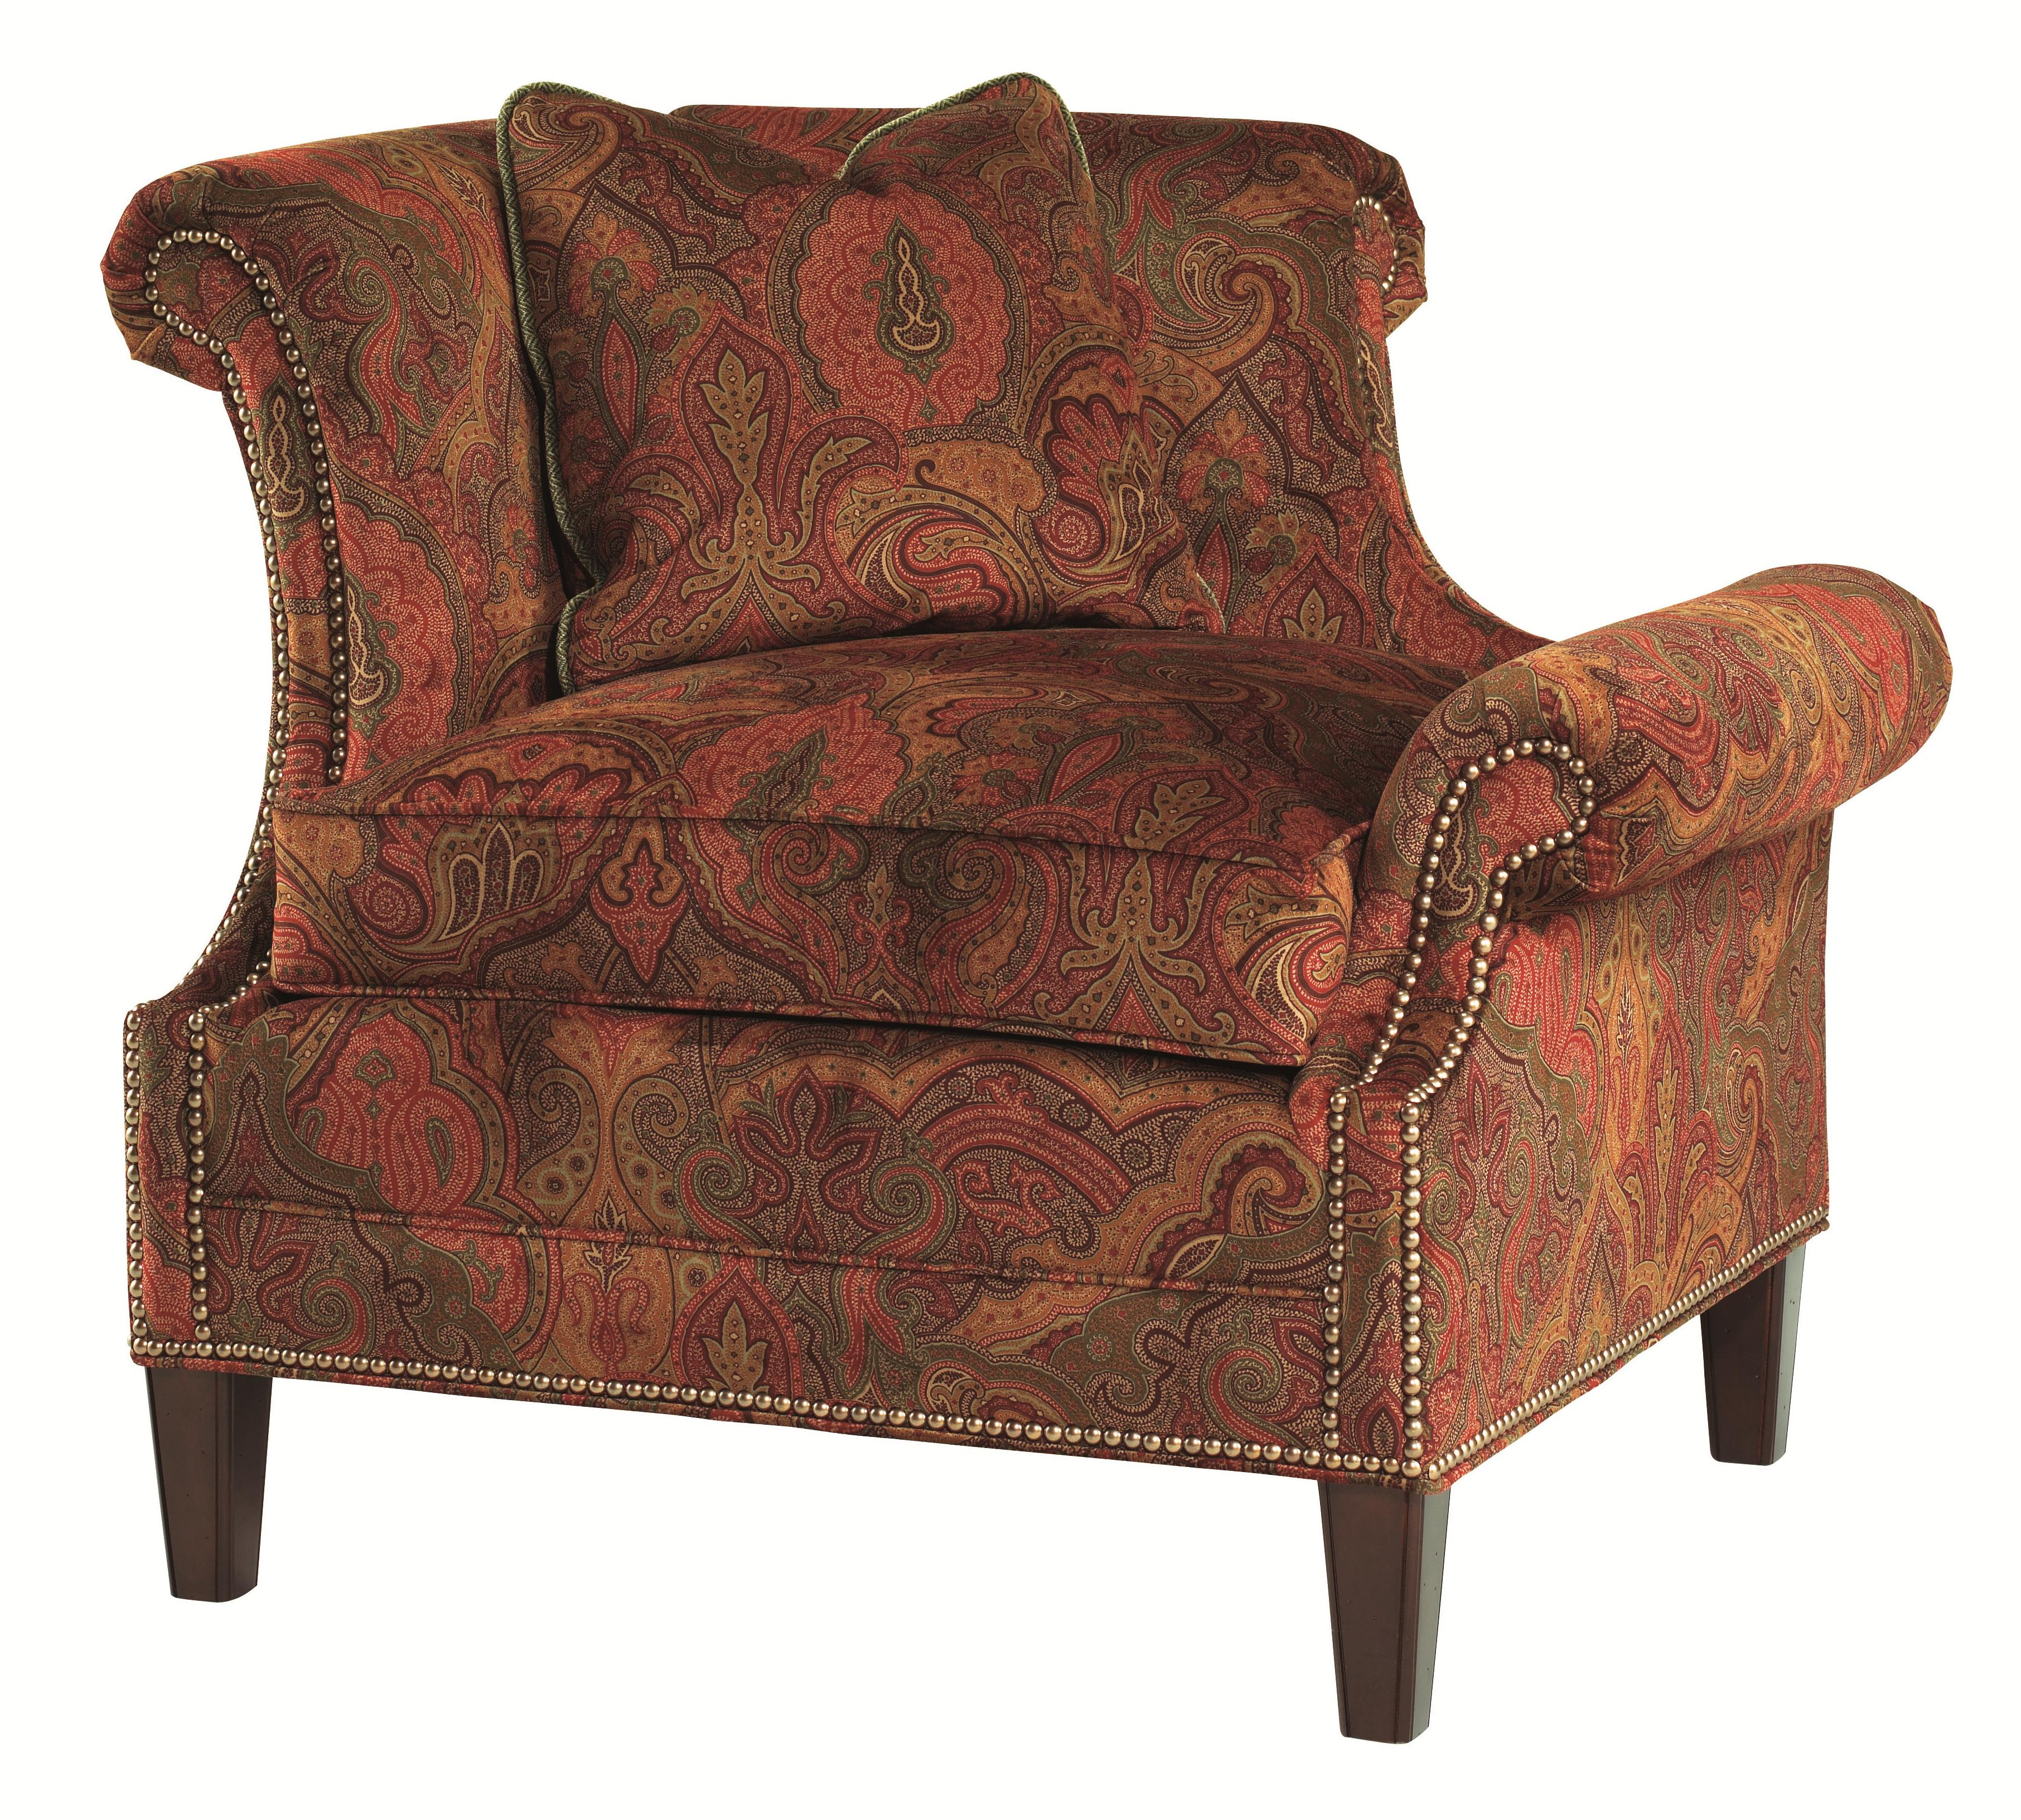 Upholstery Braddock Laf Upholstered Chair by Lexington at Baer's Furniture